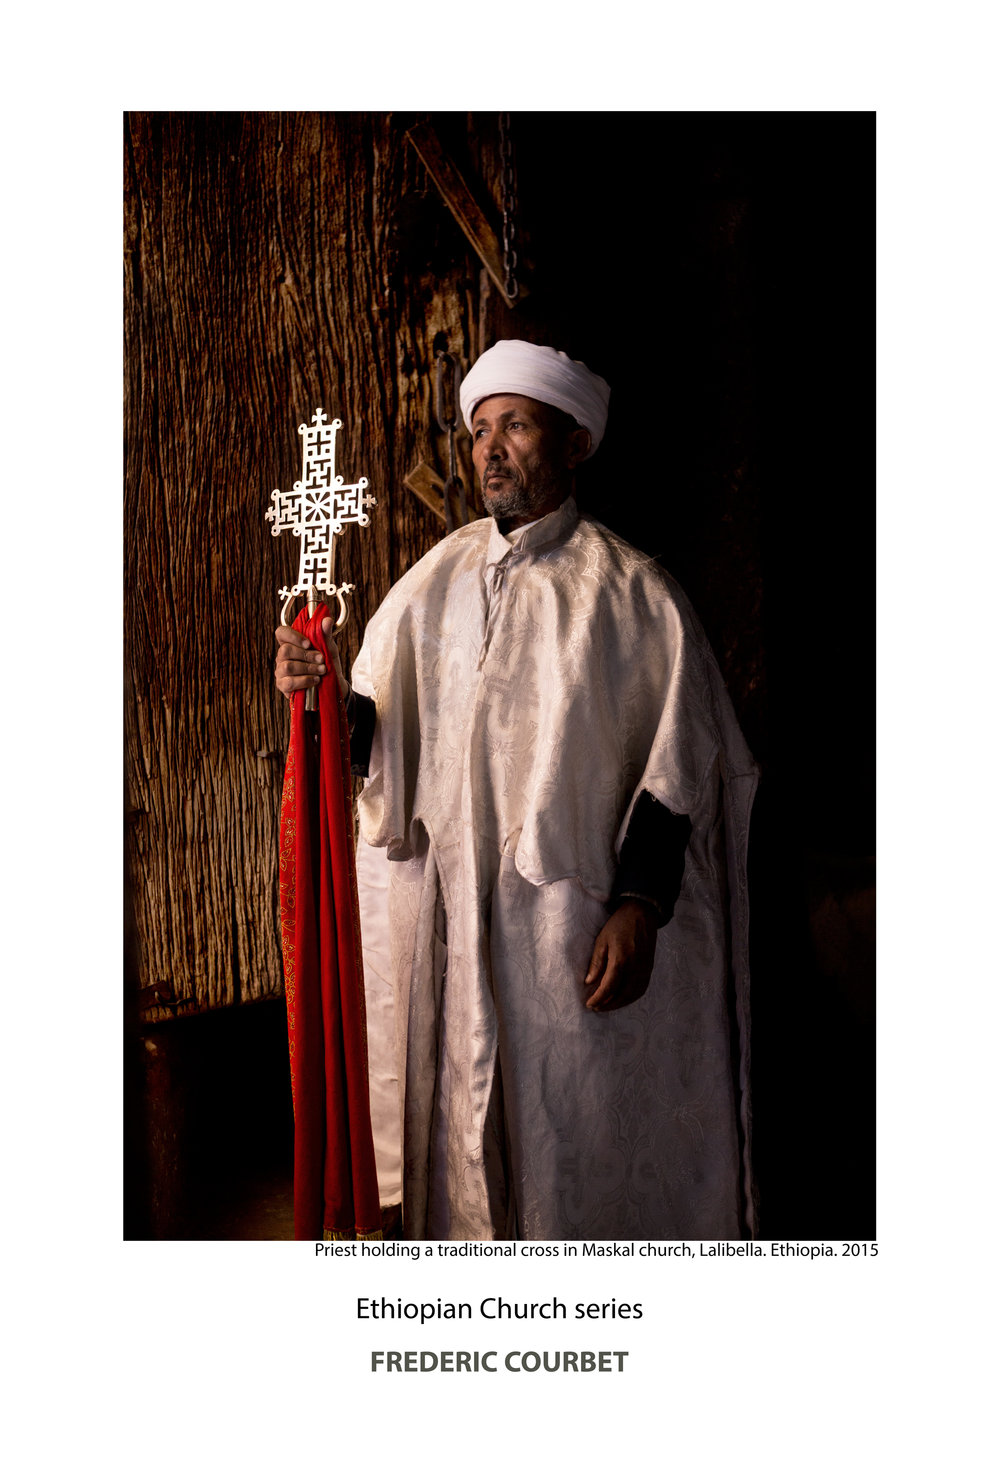 Maskal-cross-Priest-Lalibella.jpg